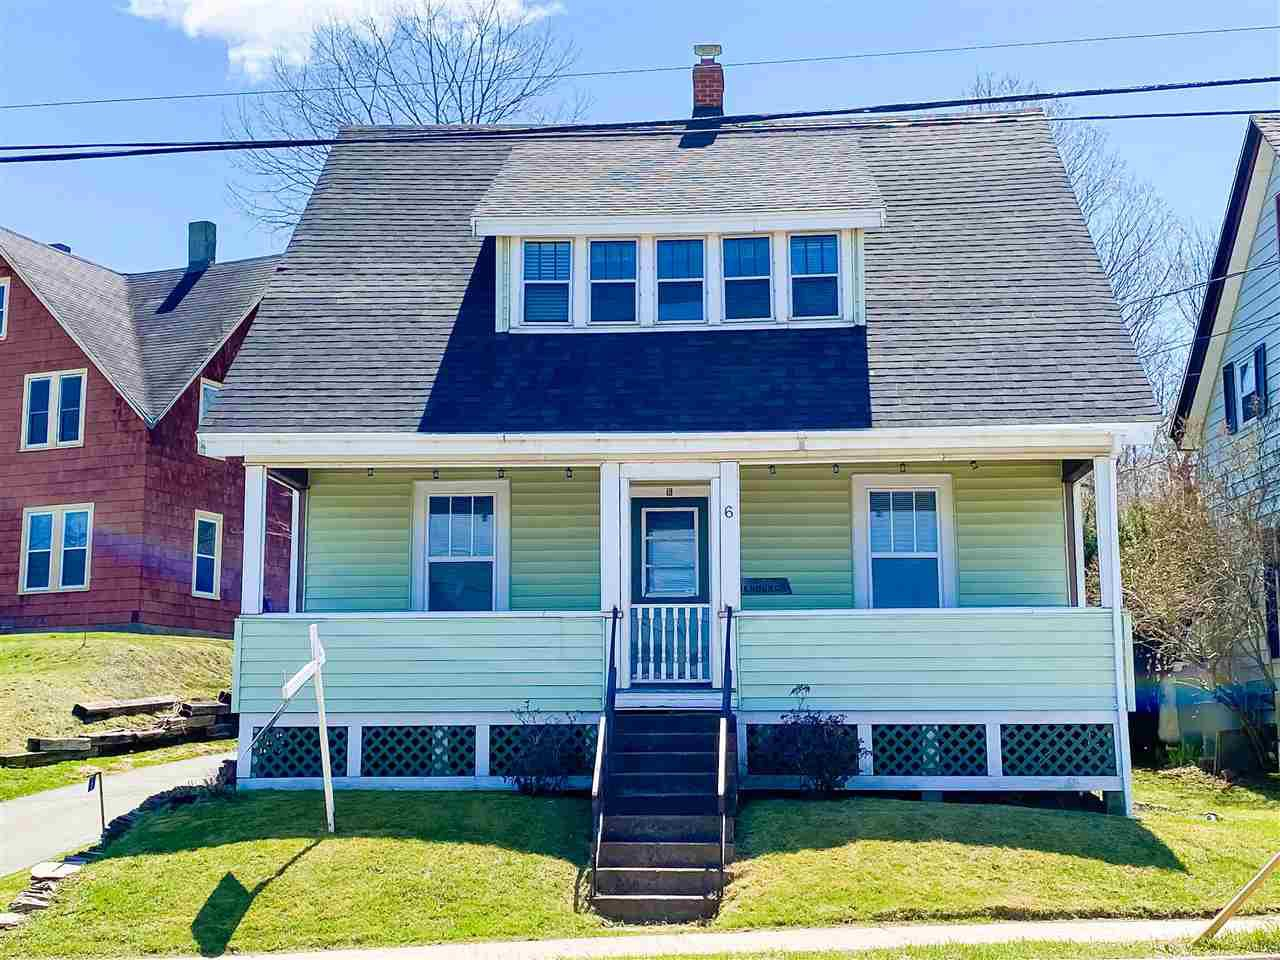 Main Photo: 6 PARK Street in Kentville: 404-Kings County Residential for sale (Annapolis Valley)  : MLS®# 202003791